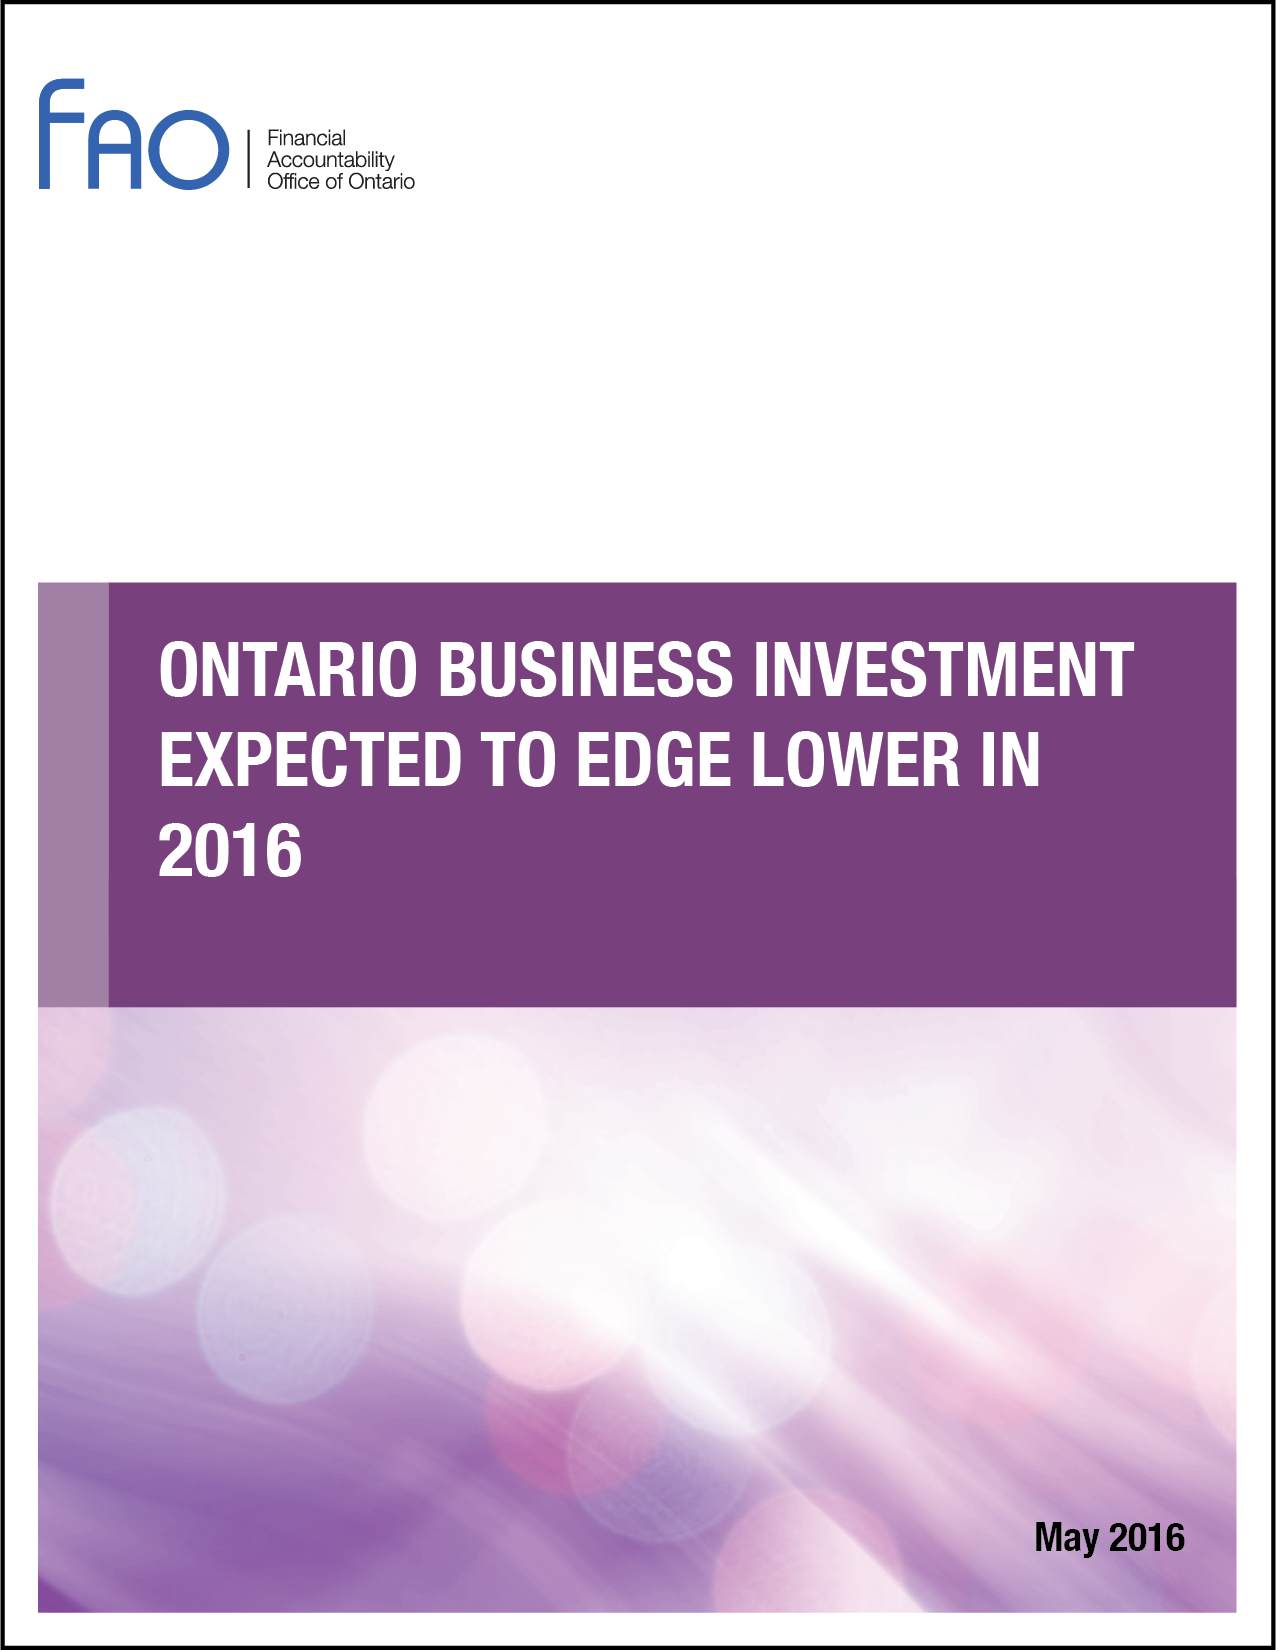 Ontario Business Investment Expected to Edge Lower in 2016